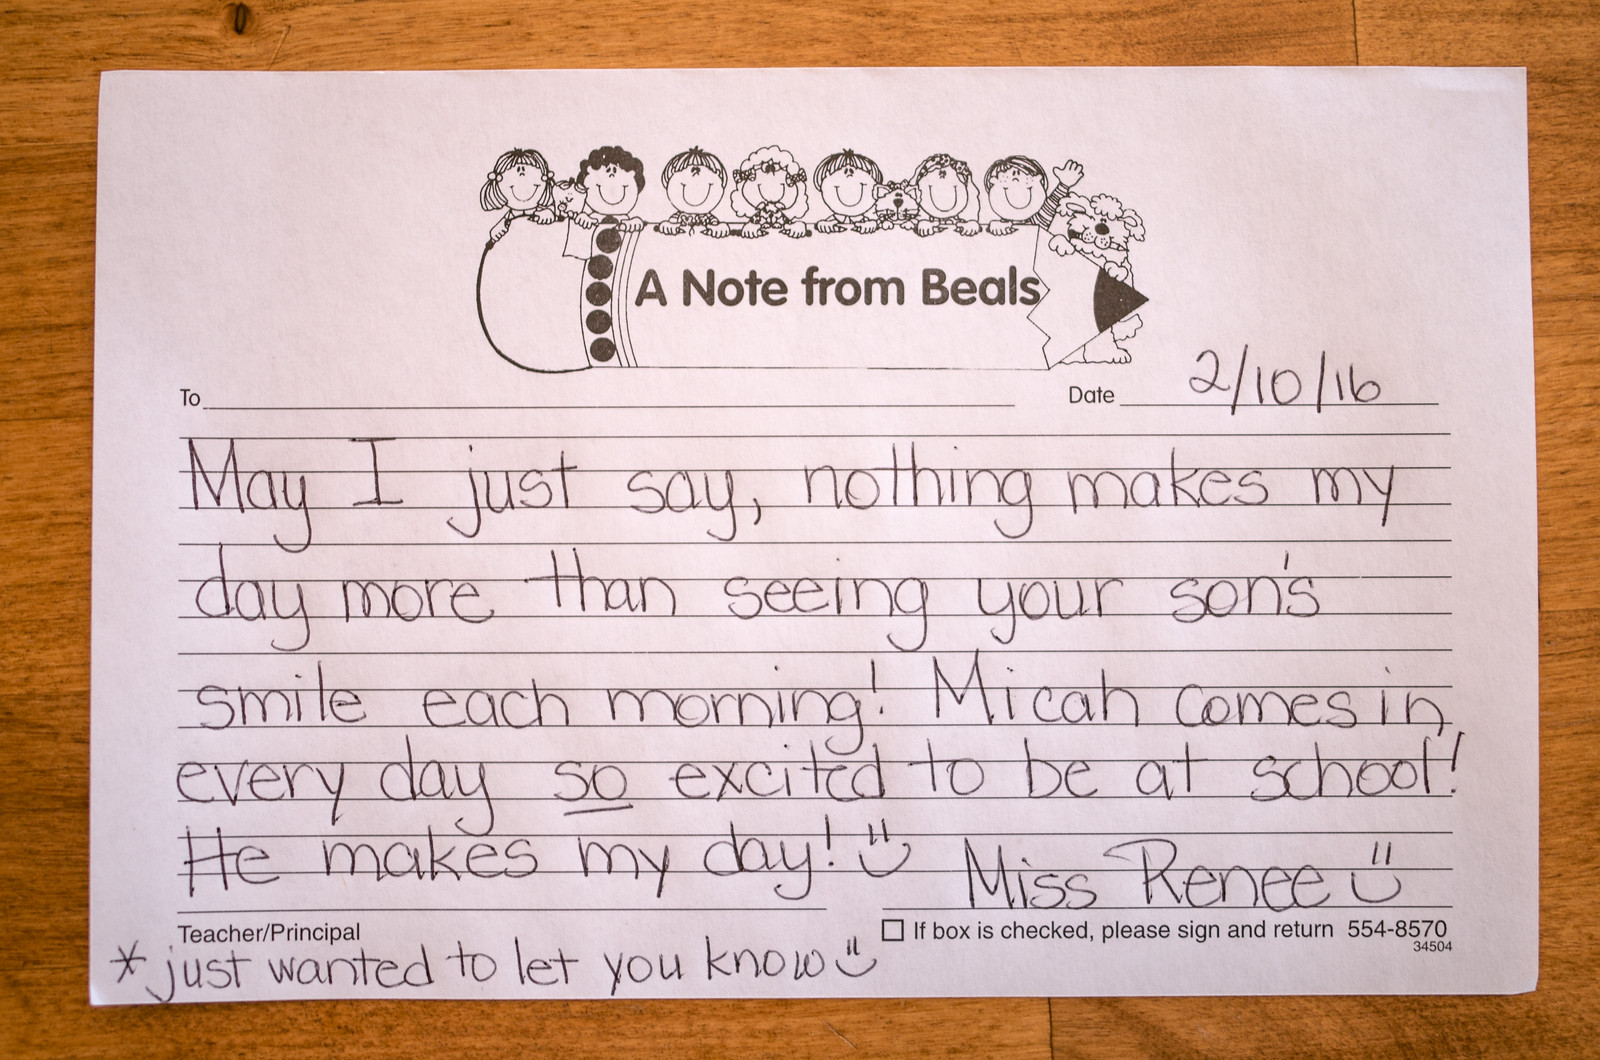 Micah School Note